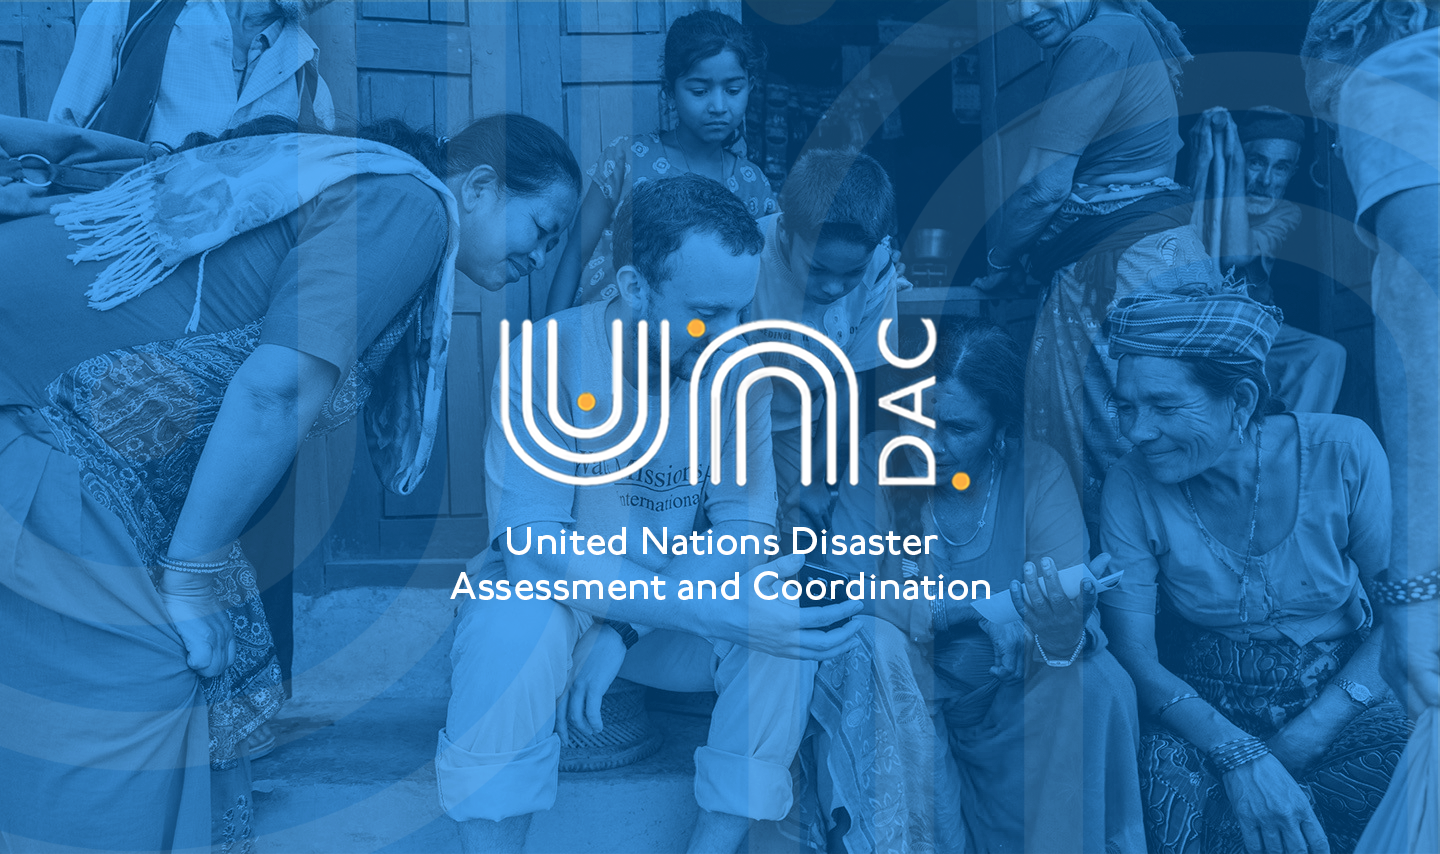 United Nations Disaster Assessment and Coordination App (UNDAC)